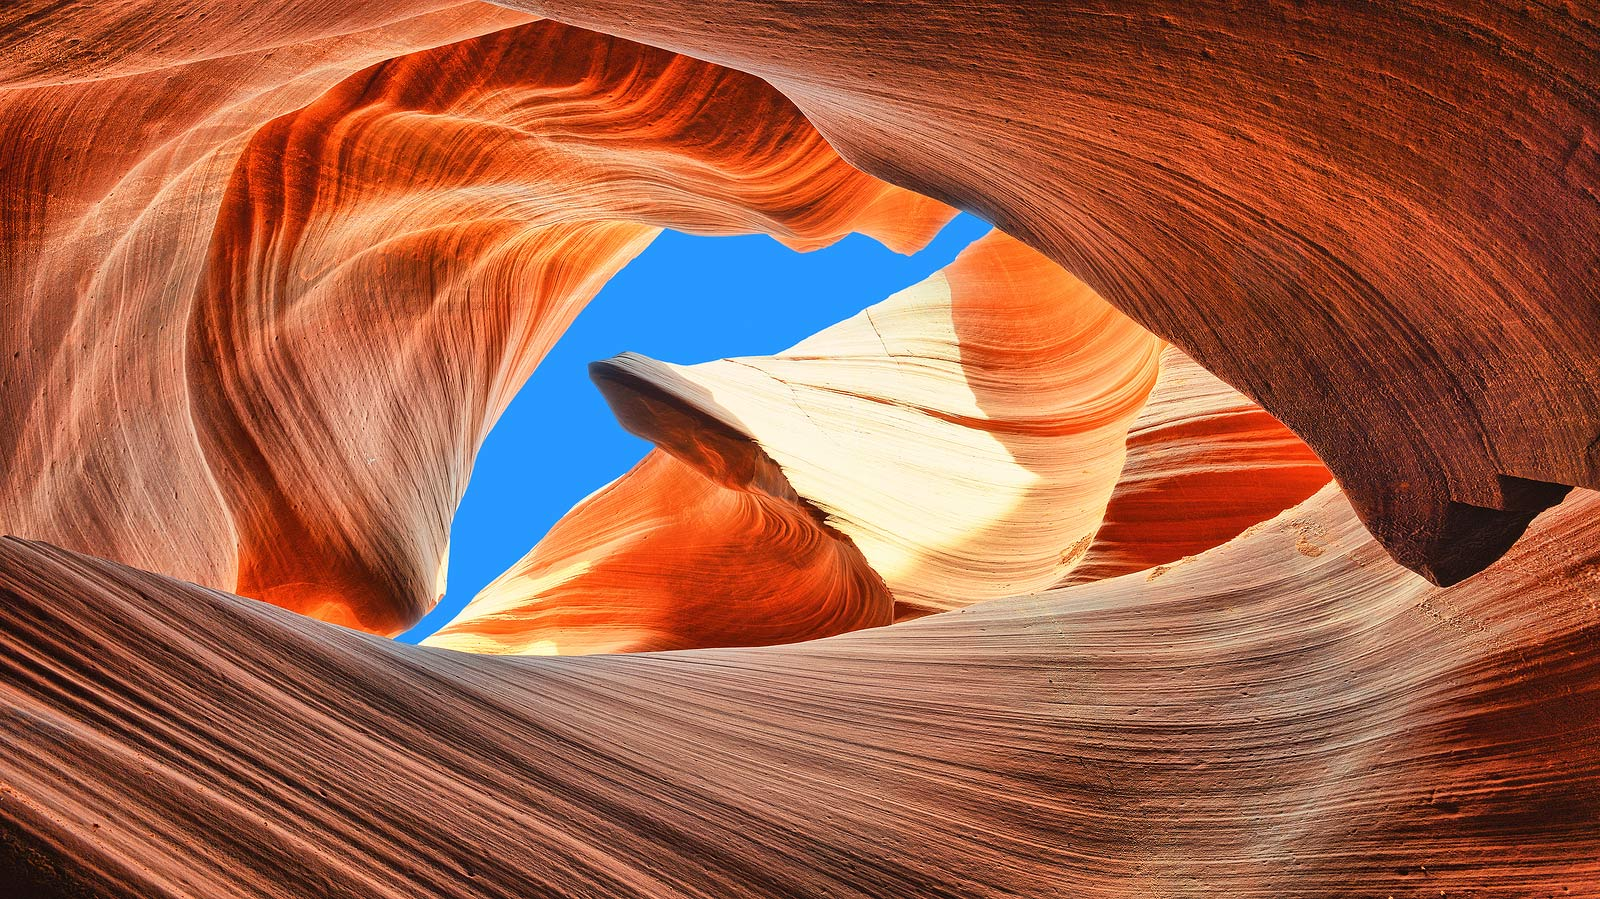 Antelope Canyon Tours and Horseshoe Mesa